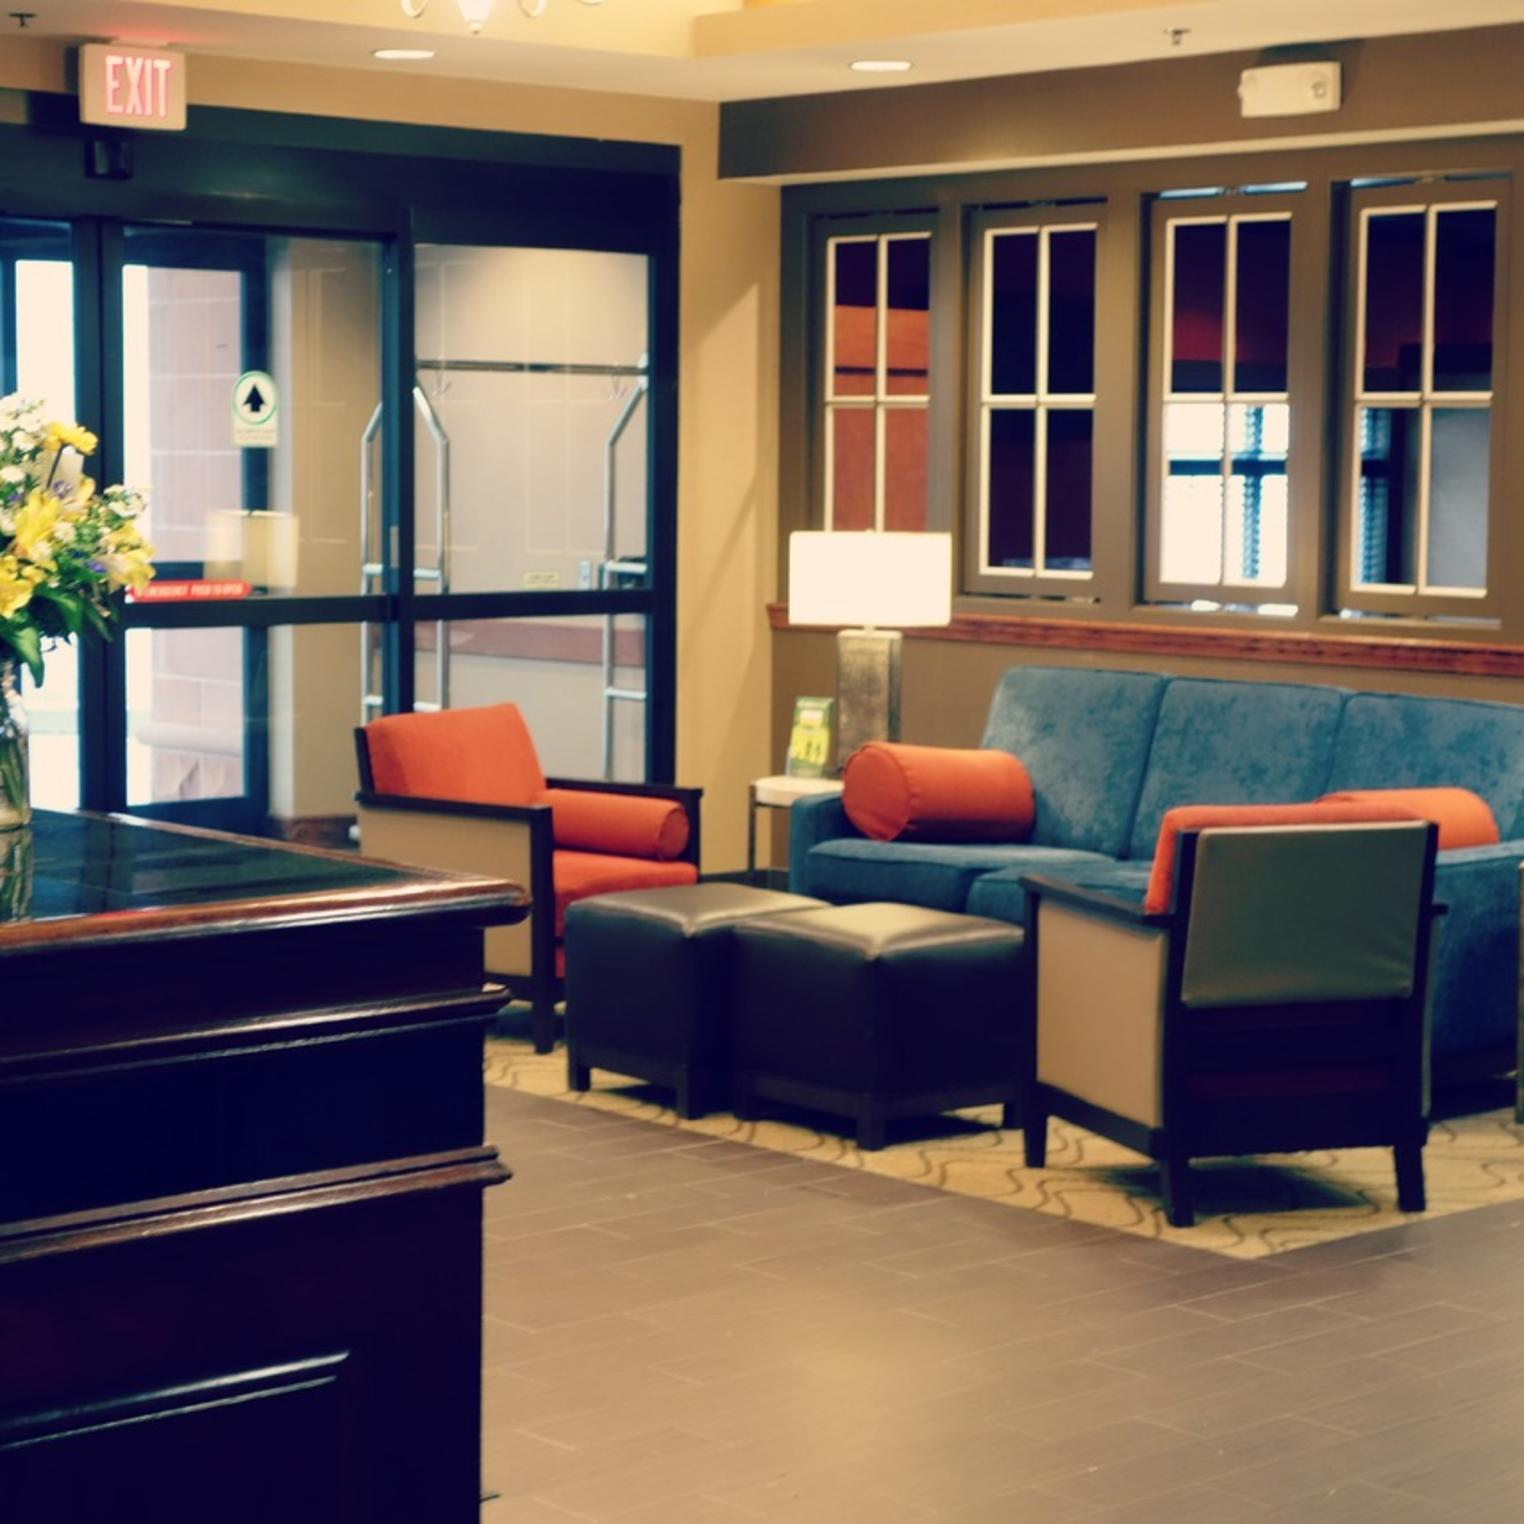 Our newly renovated lobby welcoming guests.